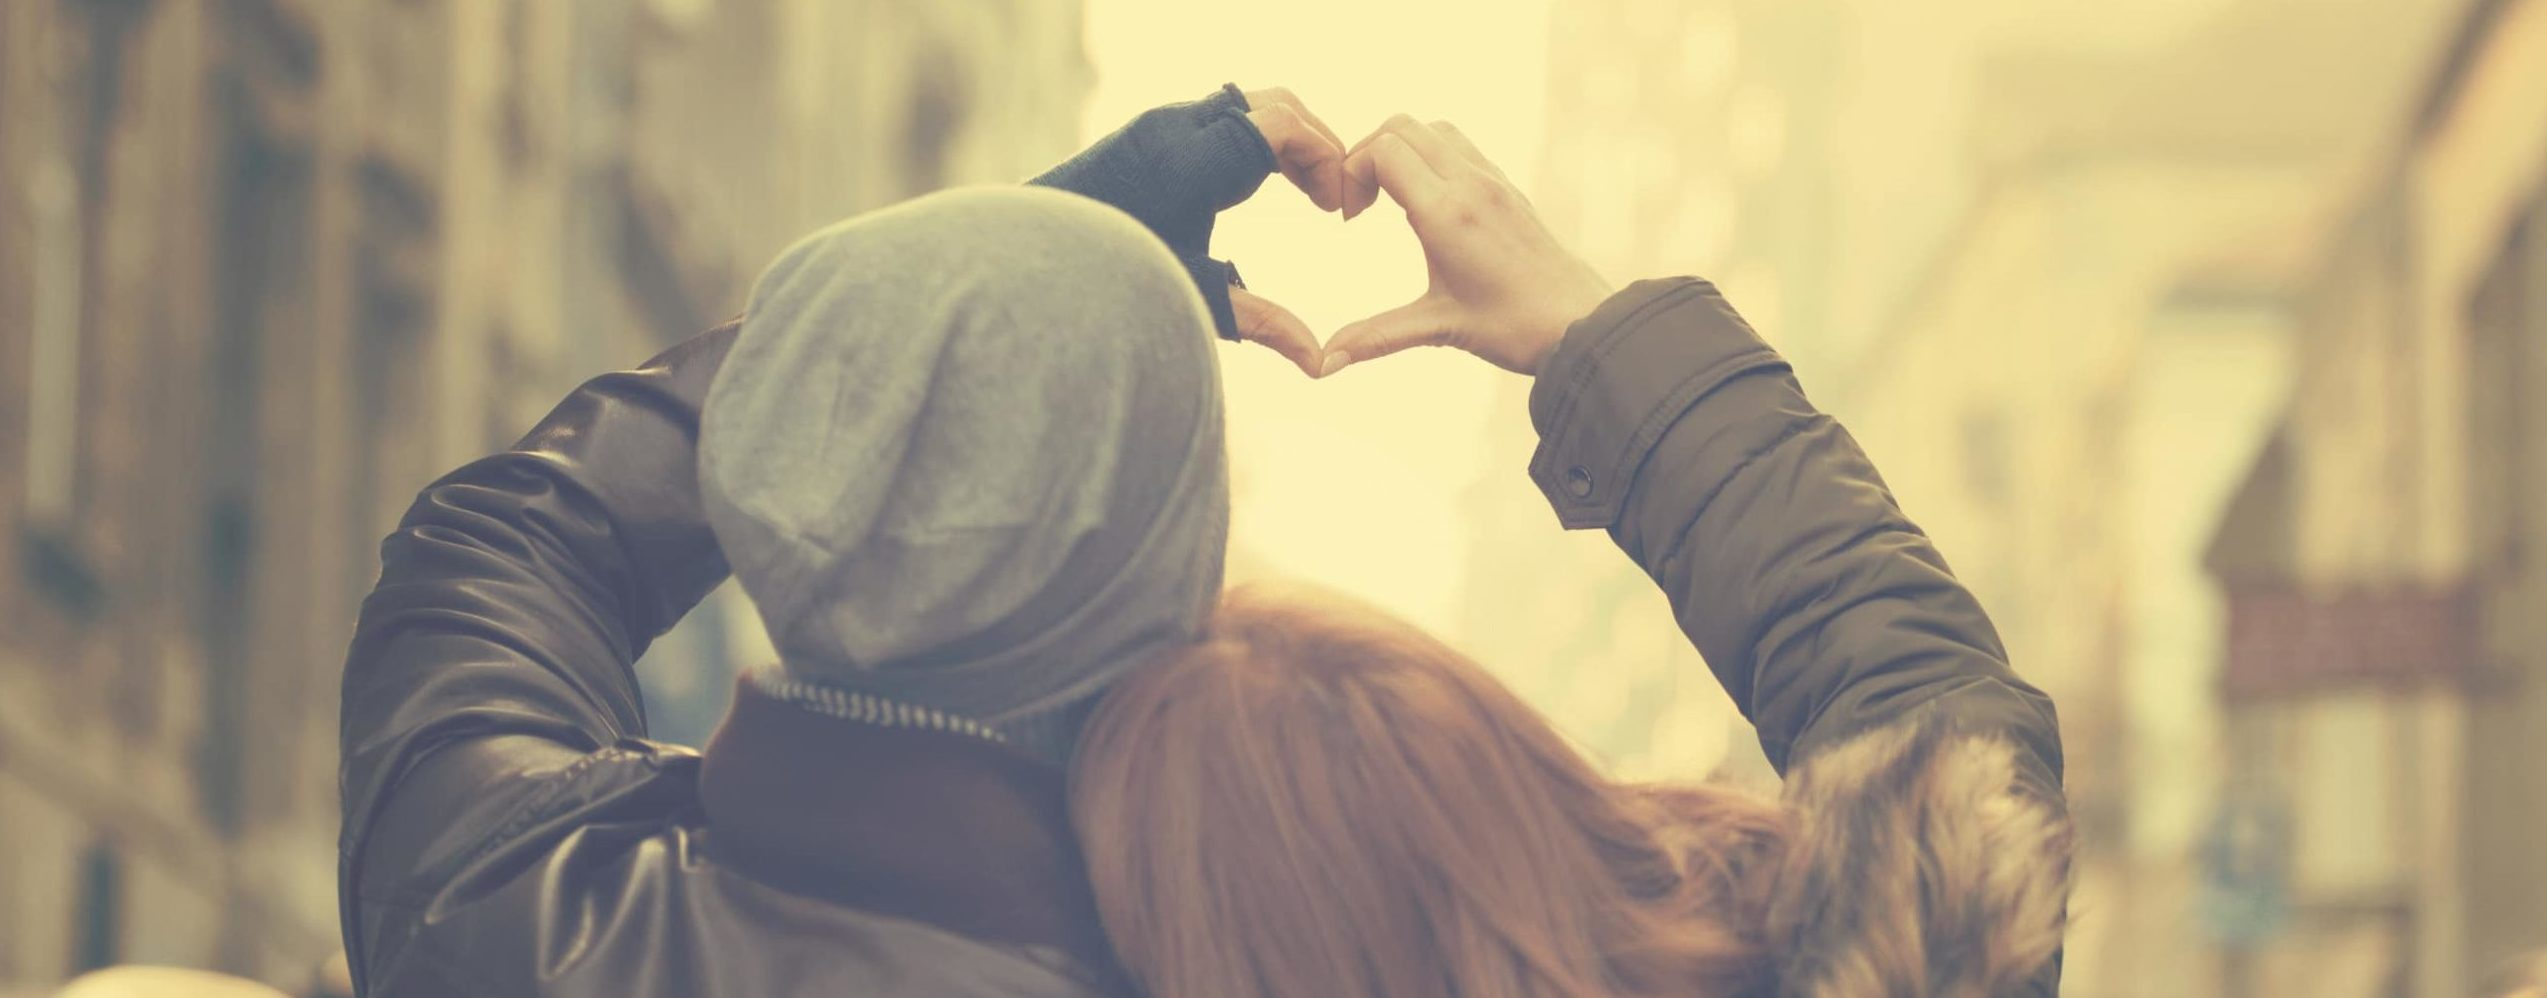 Why And How Do We Fall In Love?